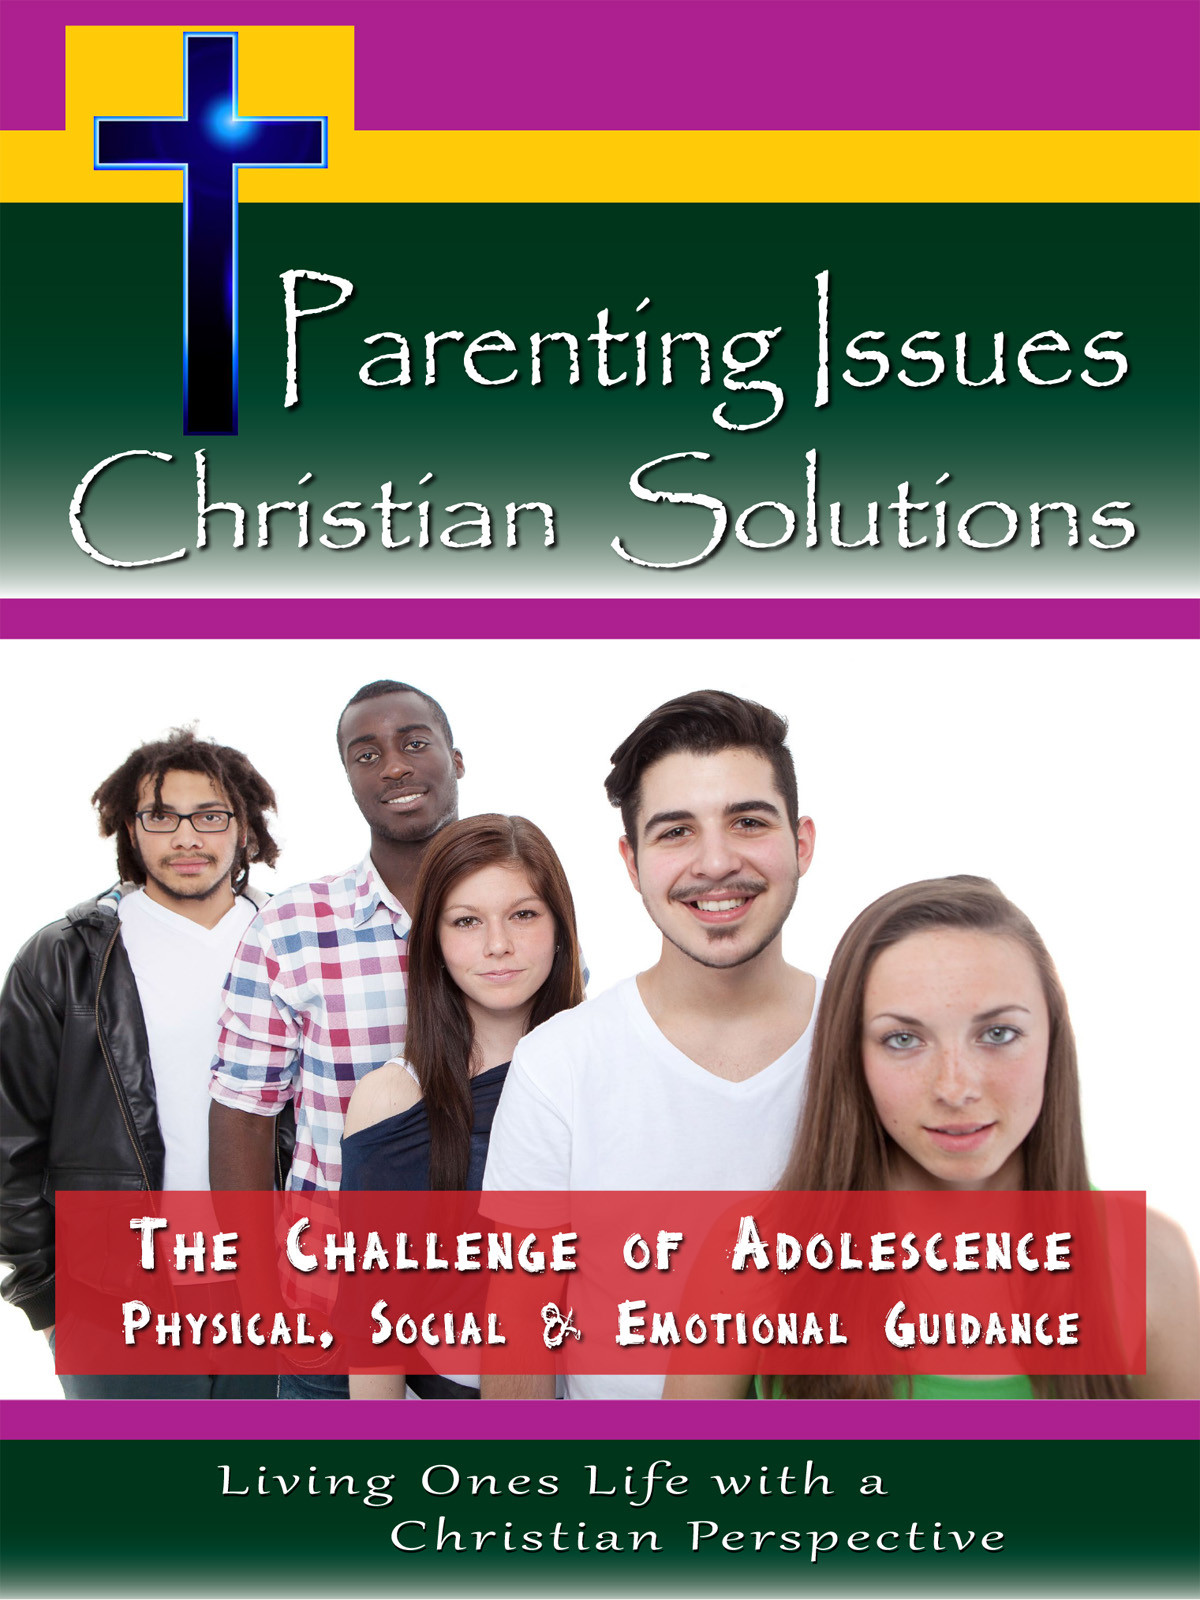 CH10001 - The Challenge of Adolescence Physical, Social & Emotional Guidance